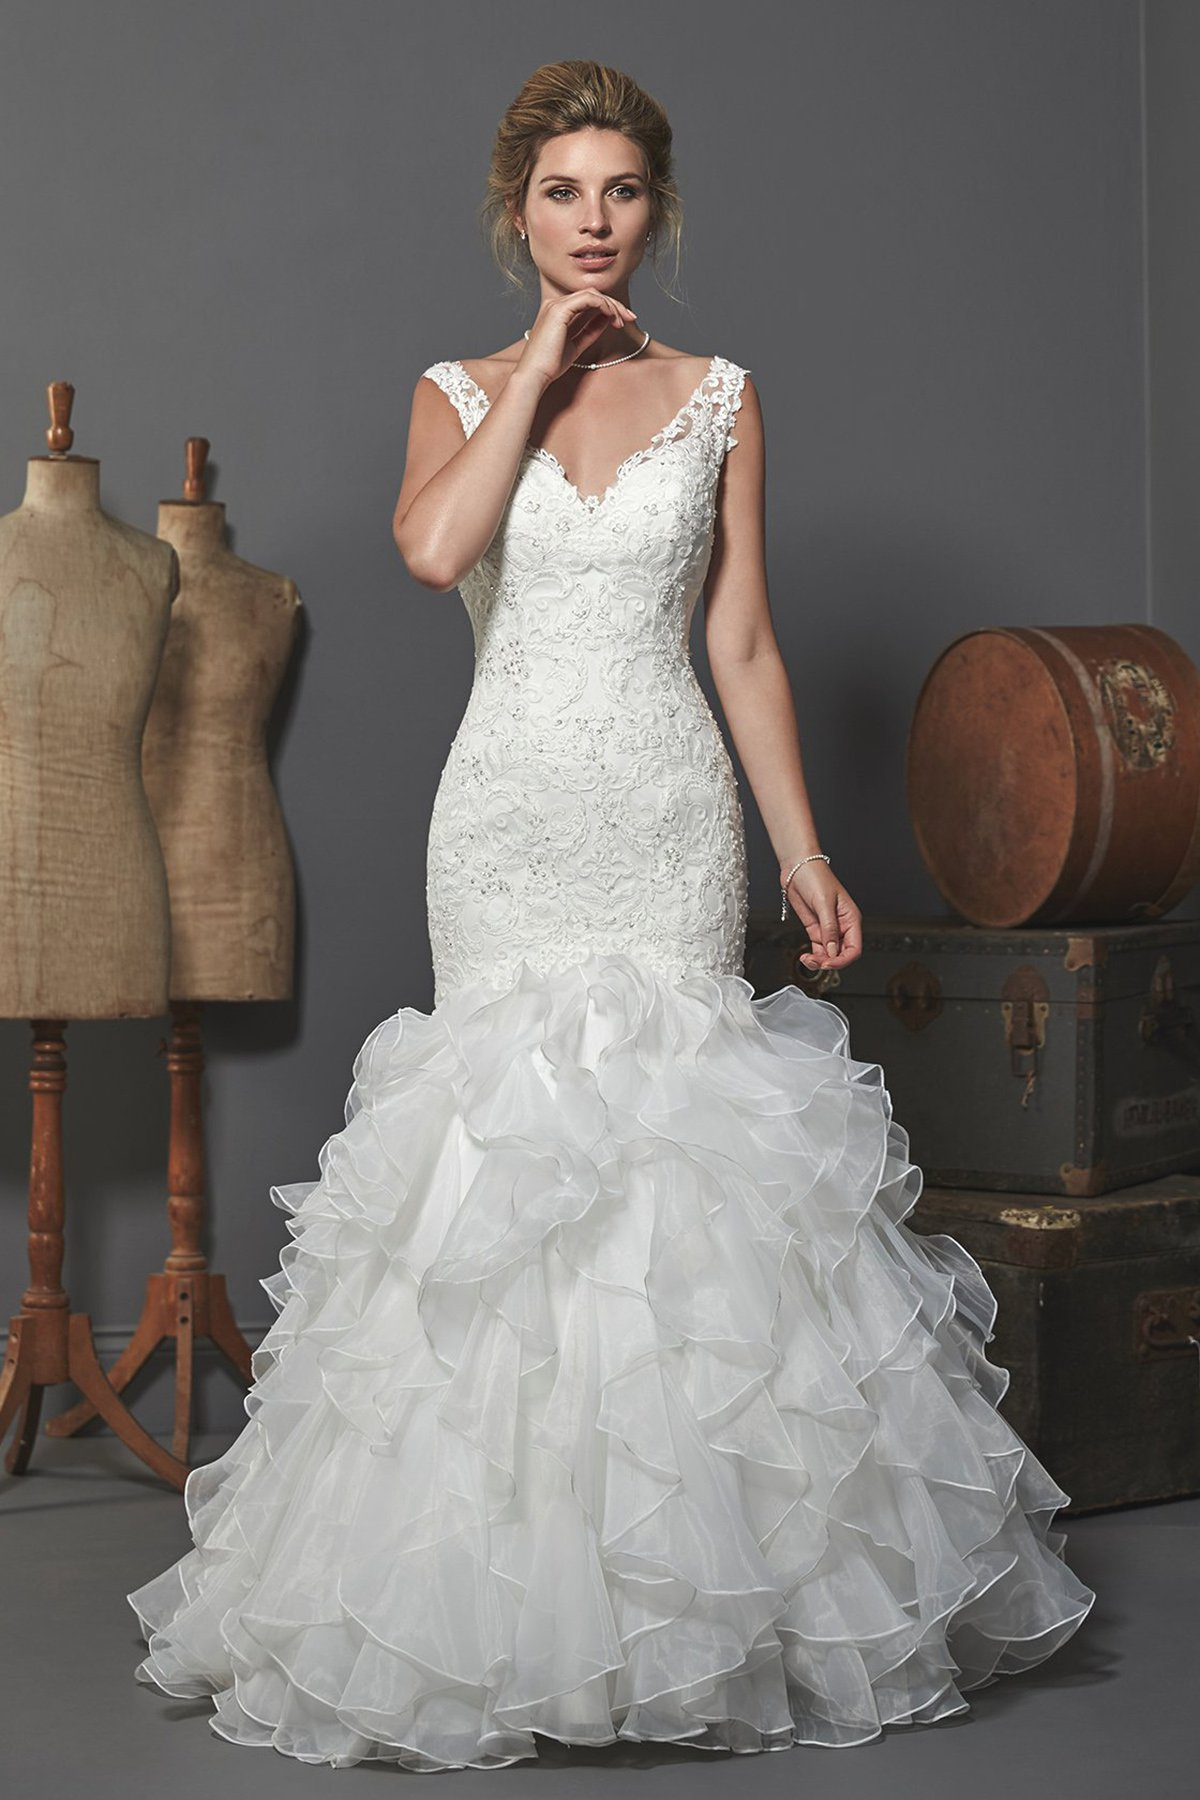 Palma Romatica Wedding Dress at Kent Wedding Centre